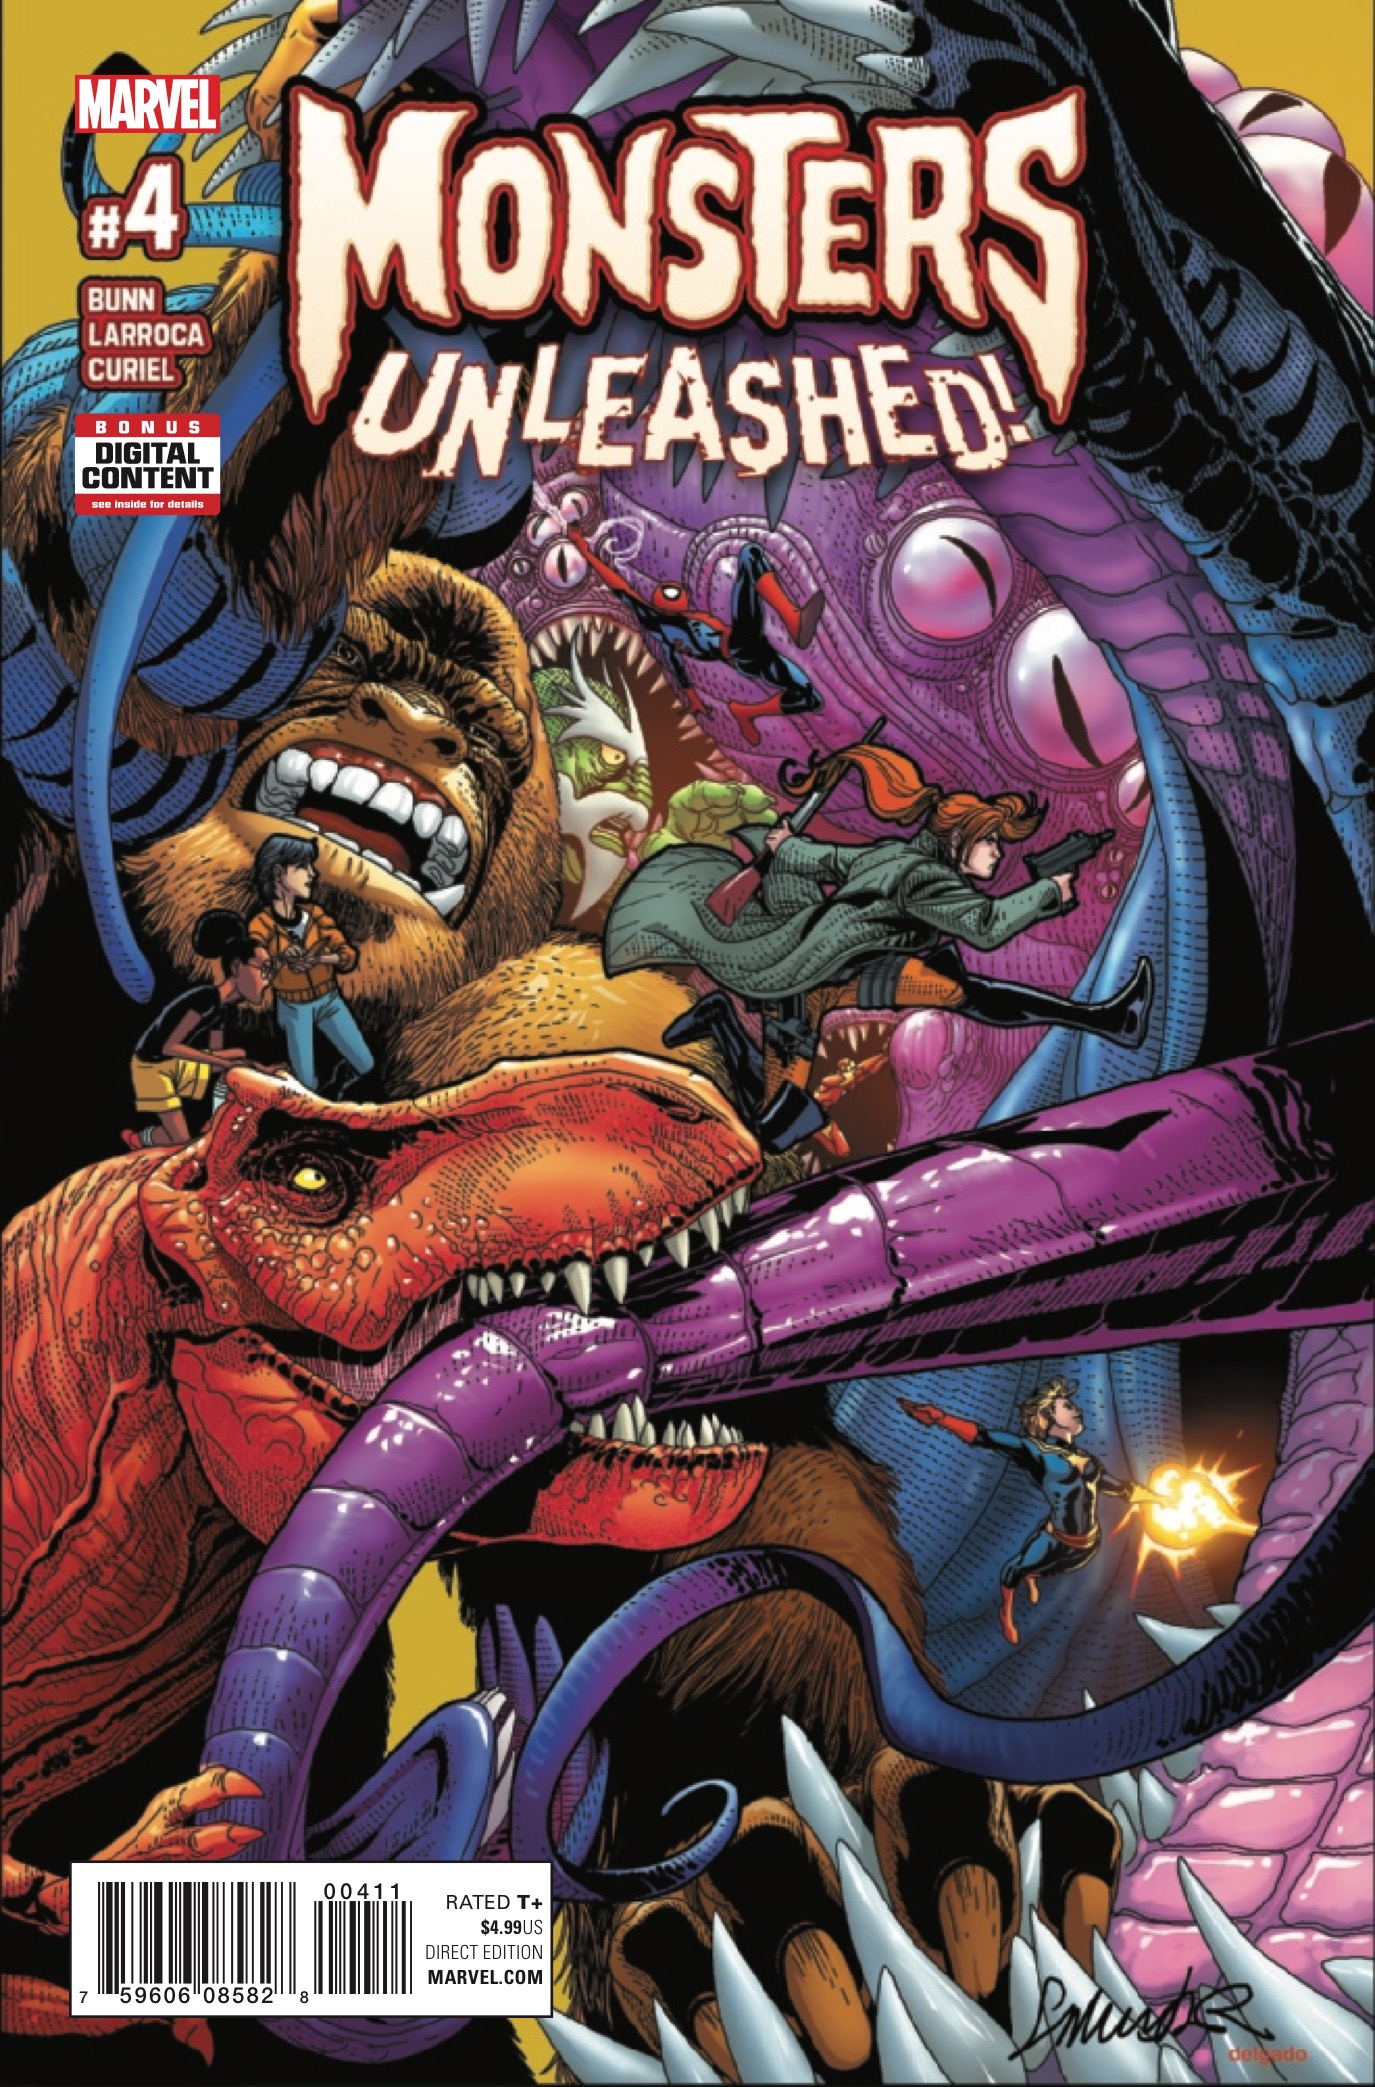 Monsters Unleashed #4 Review